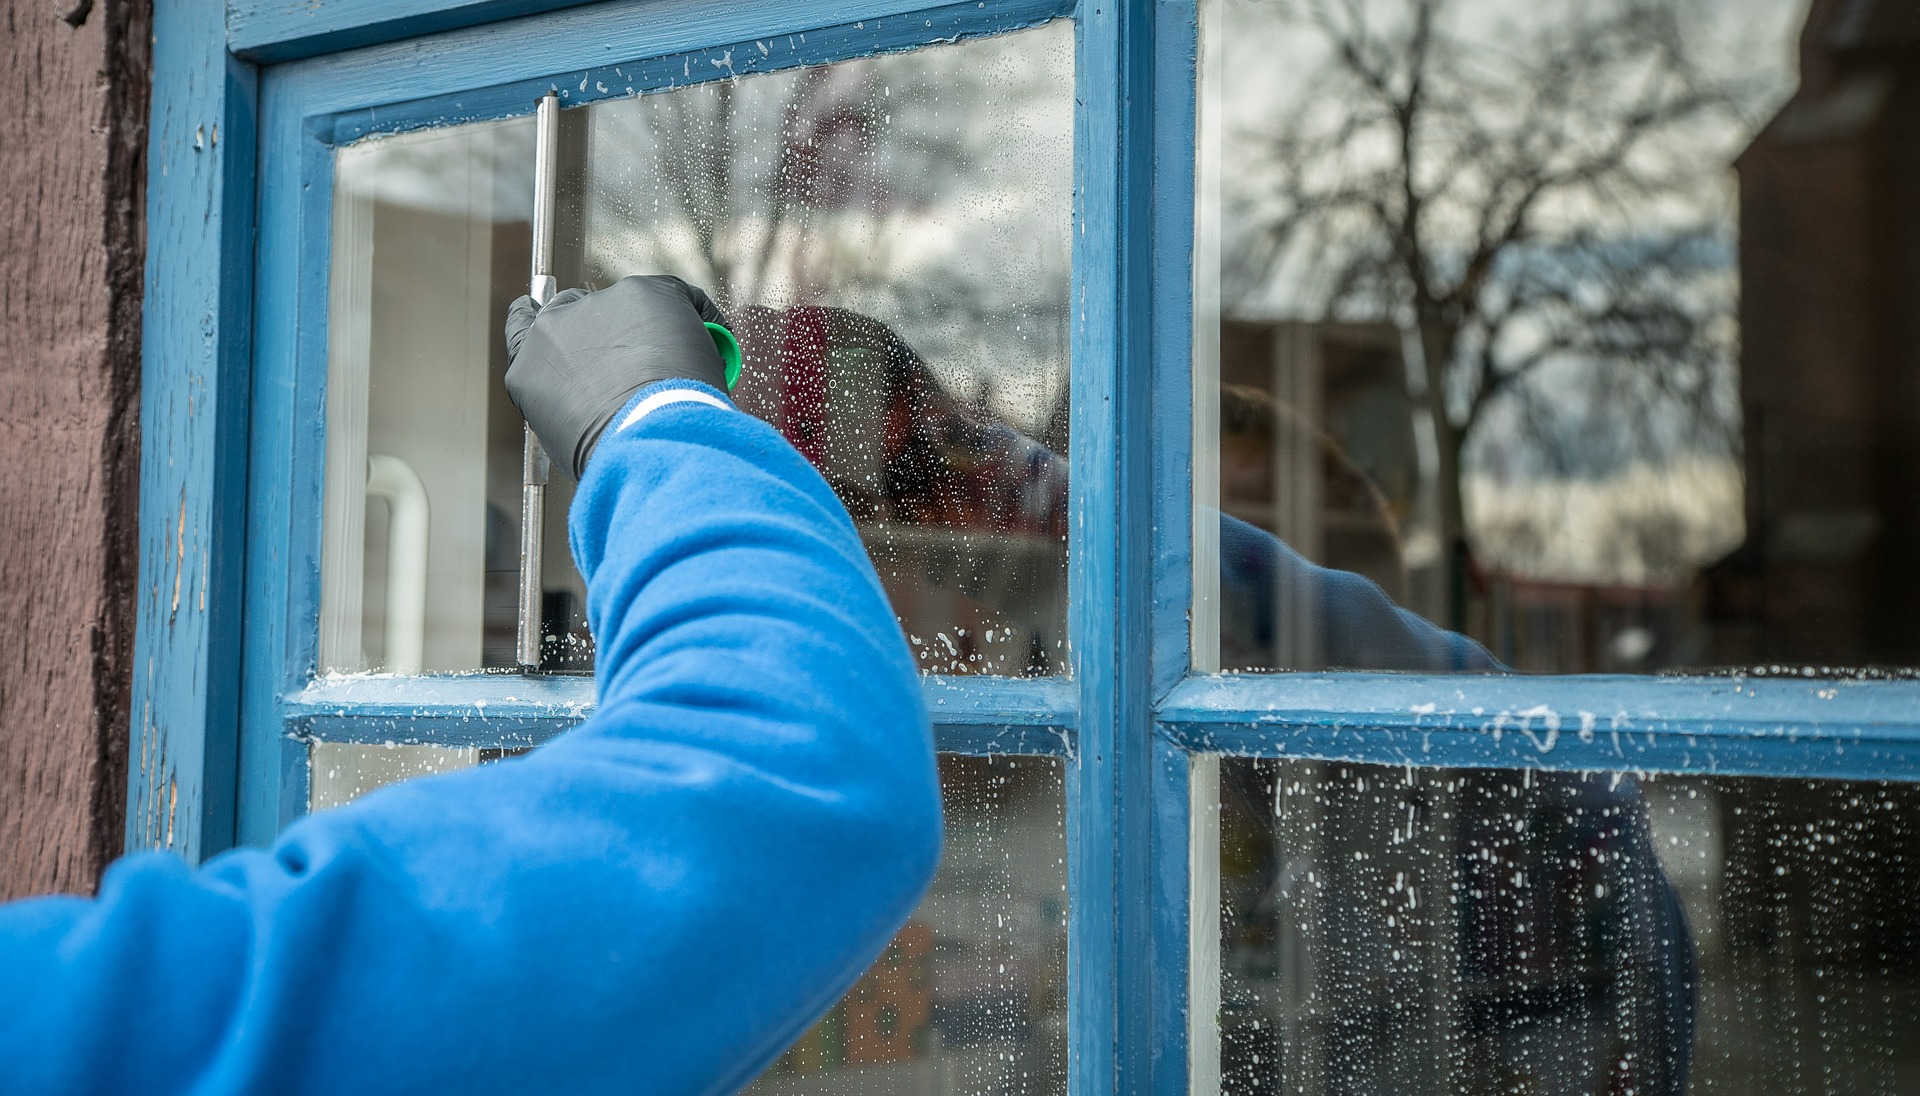 It is necessary to clean the windows of the office center as a contract. What is better to use - the forest or the cradle 56